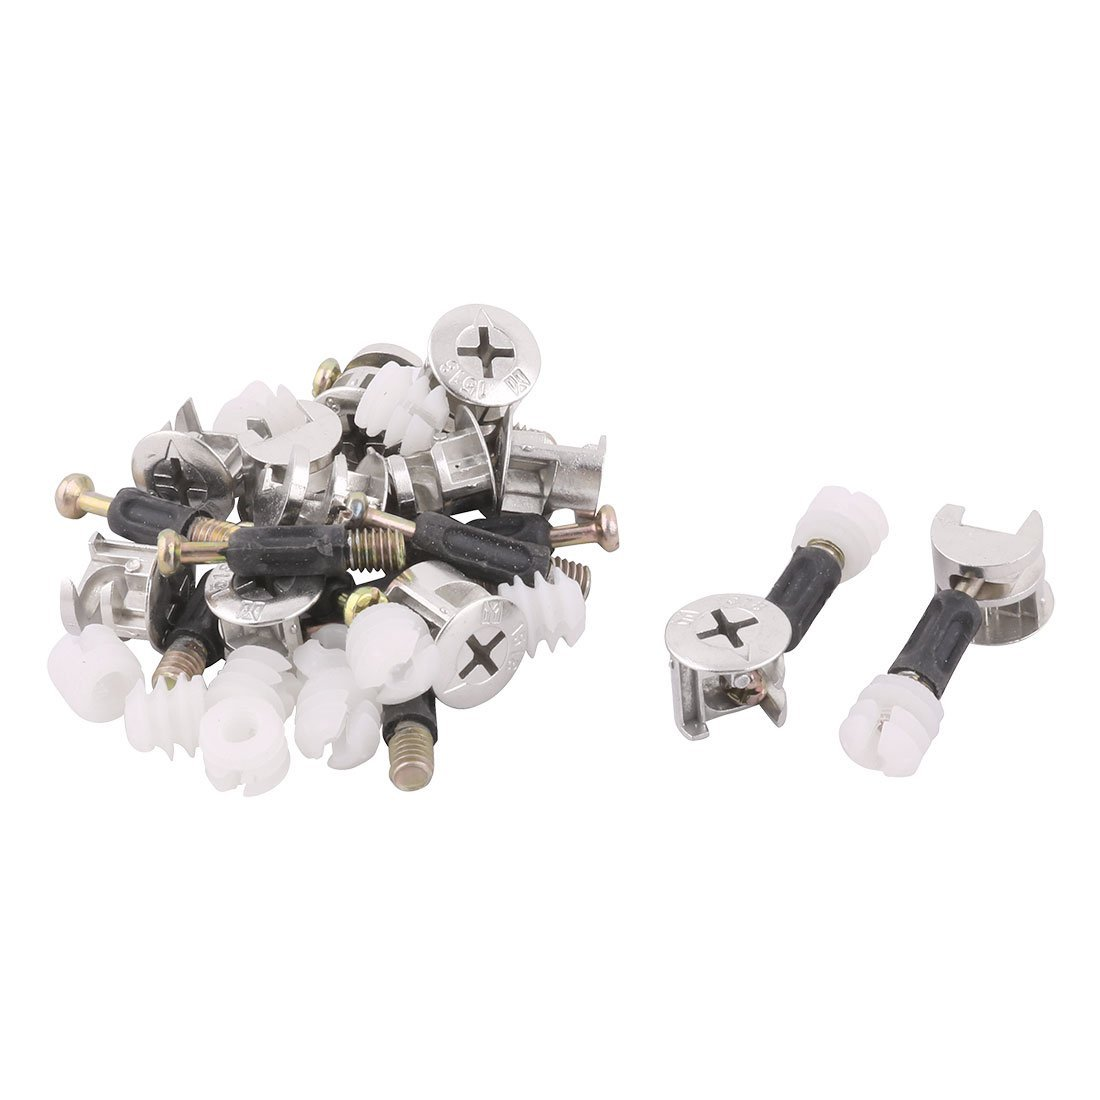 uxcell Metal Office Furniture Wardrobe Cam Lock Connecting Fitting Dowel Nut 12 Sets